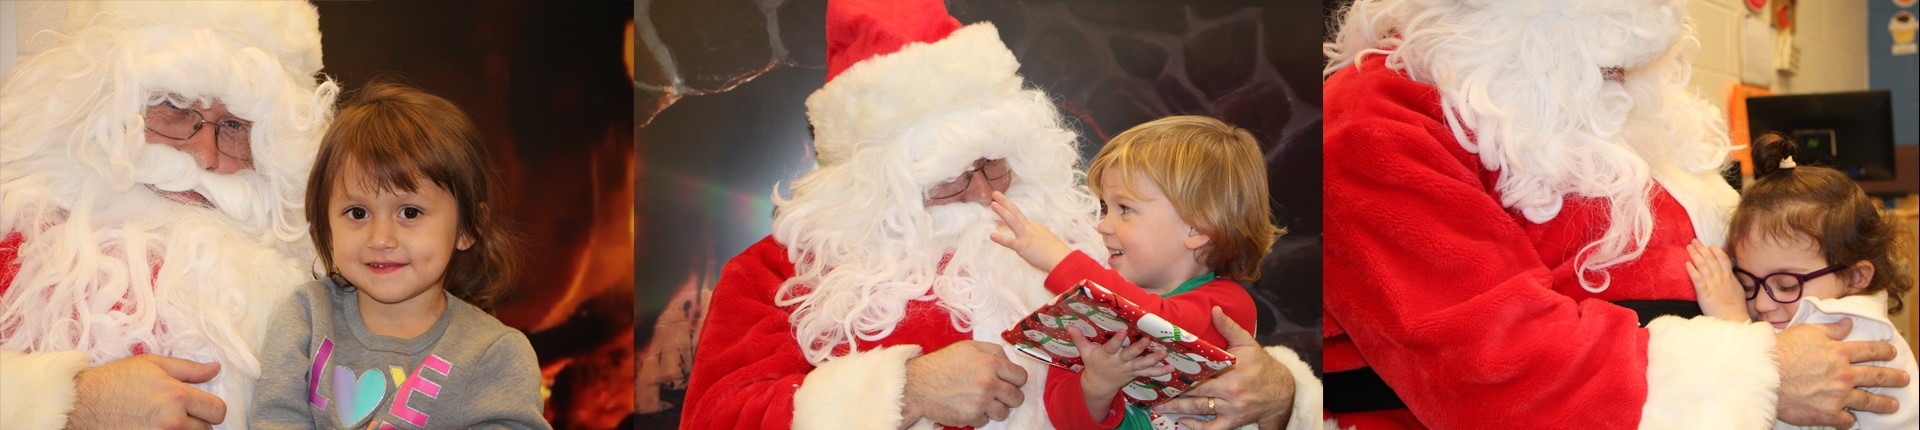 Santa comes to Preschool Head Start for a special visit.